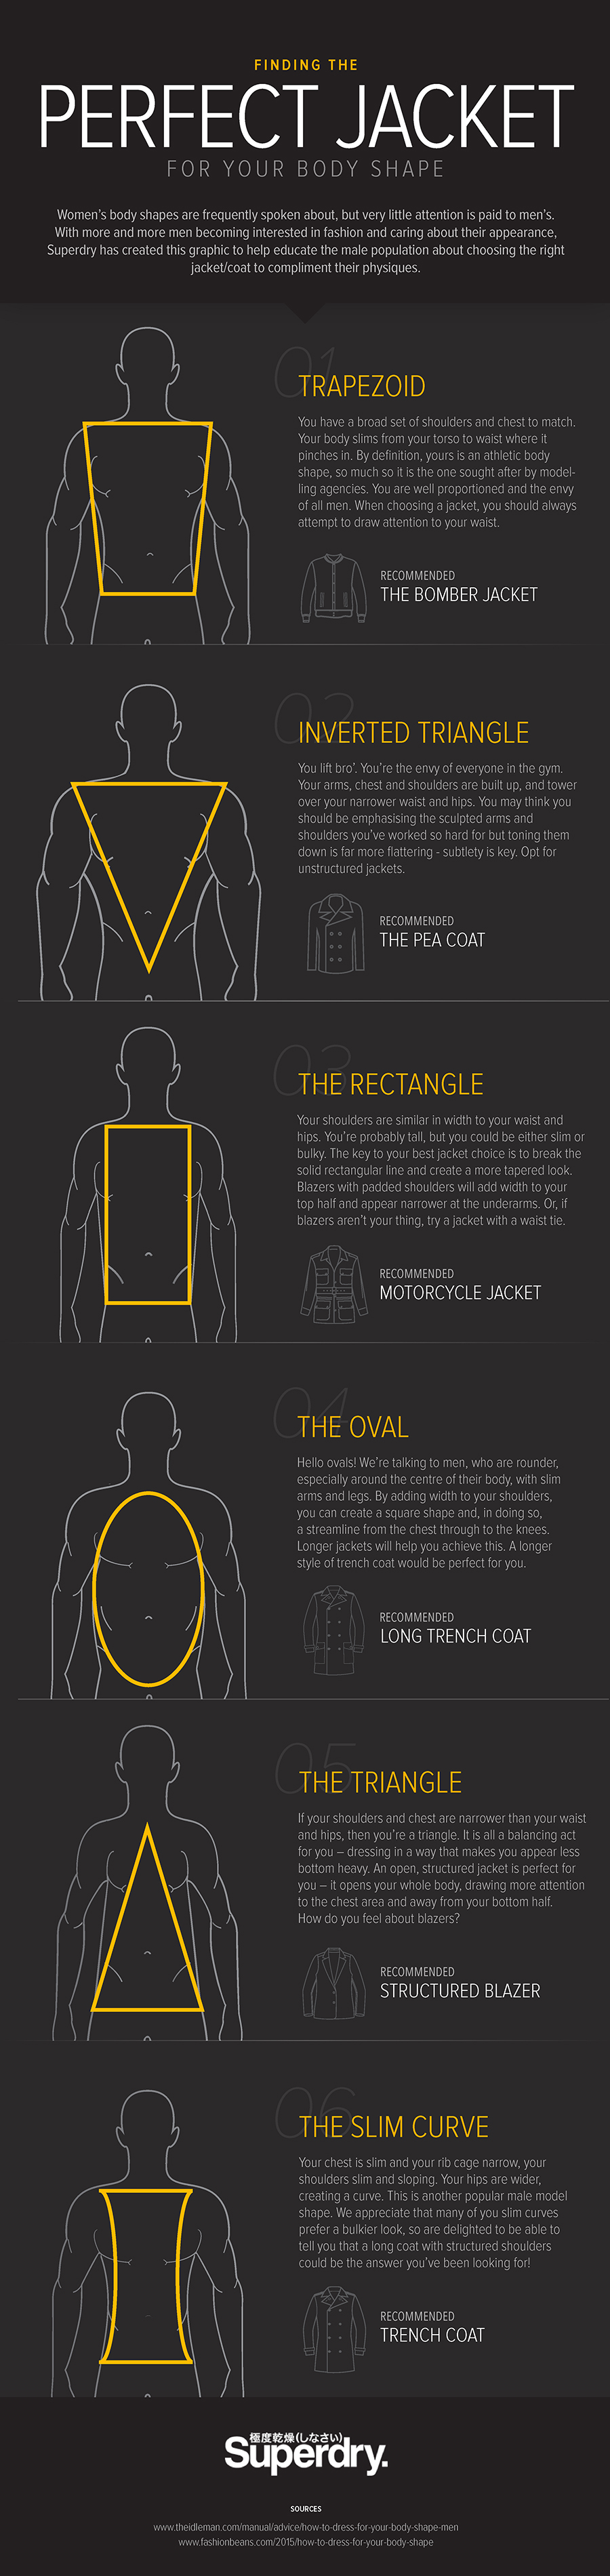 How to Find the Right Jacket